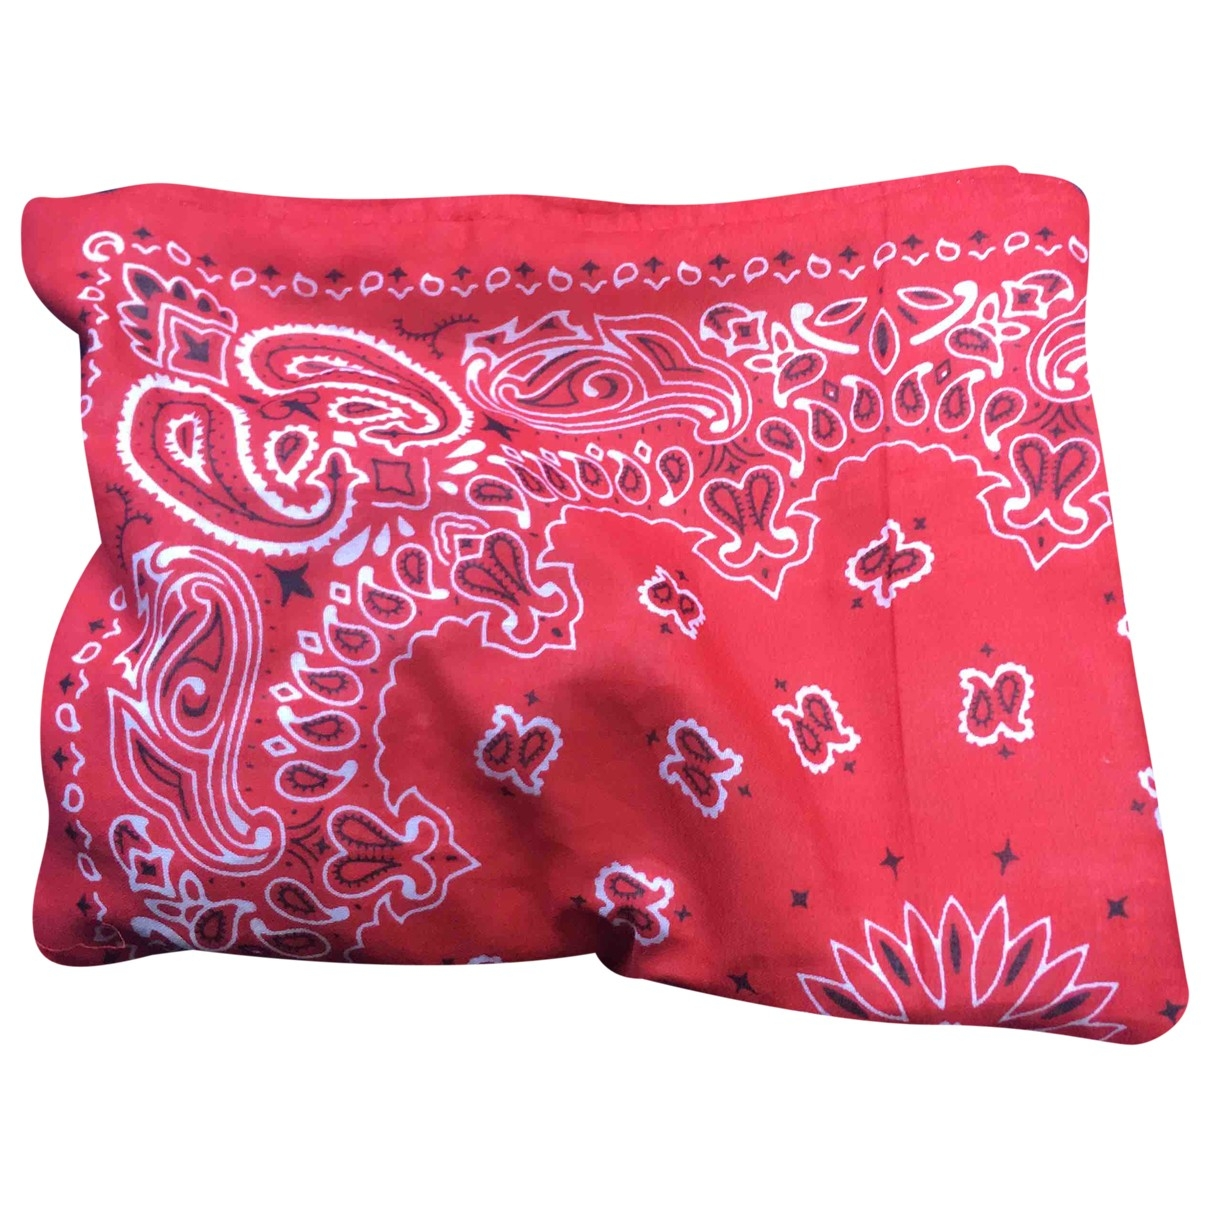 Non Signé / Unsigned Hippie Chic Red Cotton Silk handkerchief for Women \N